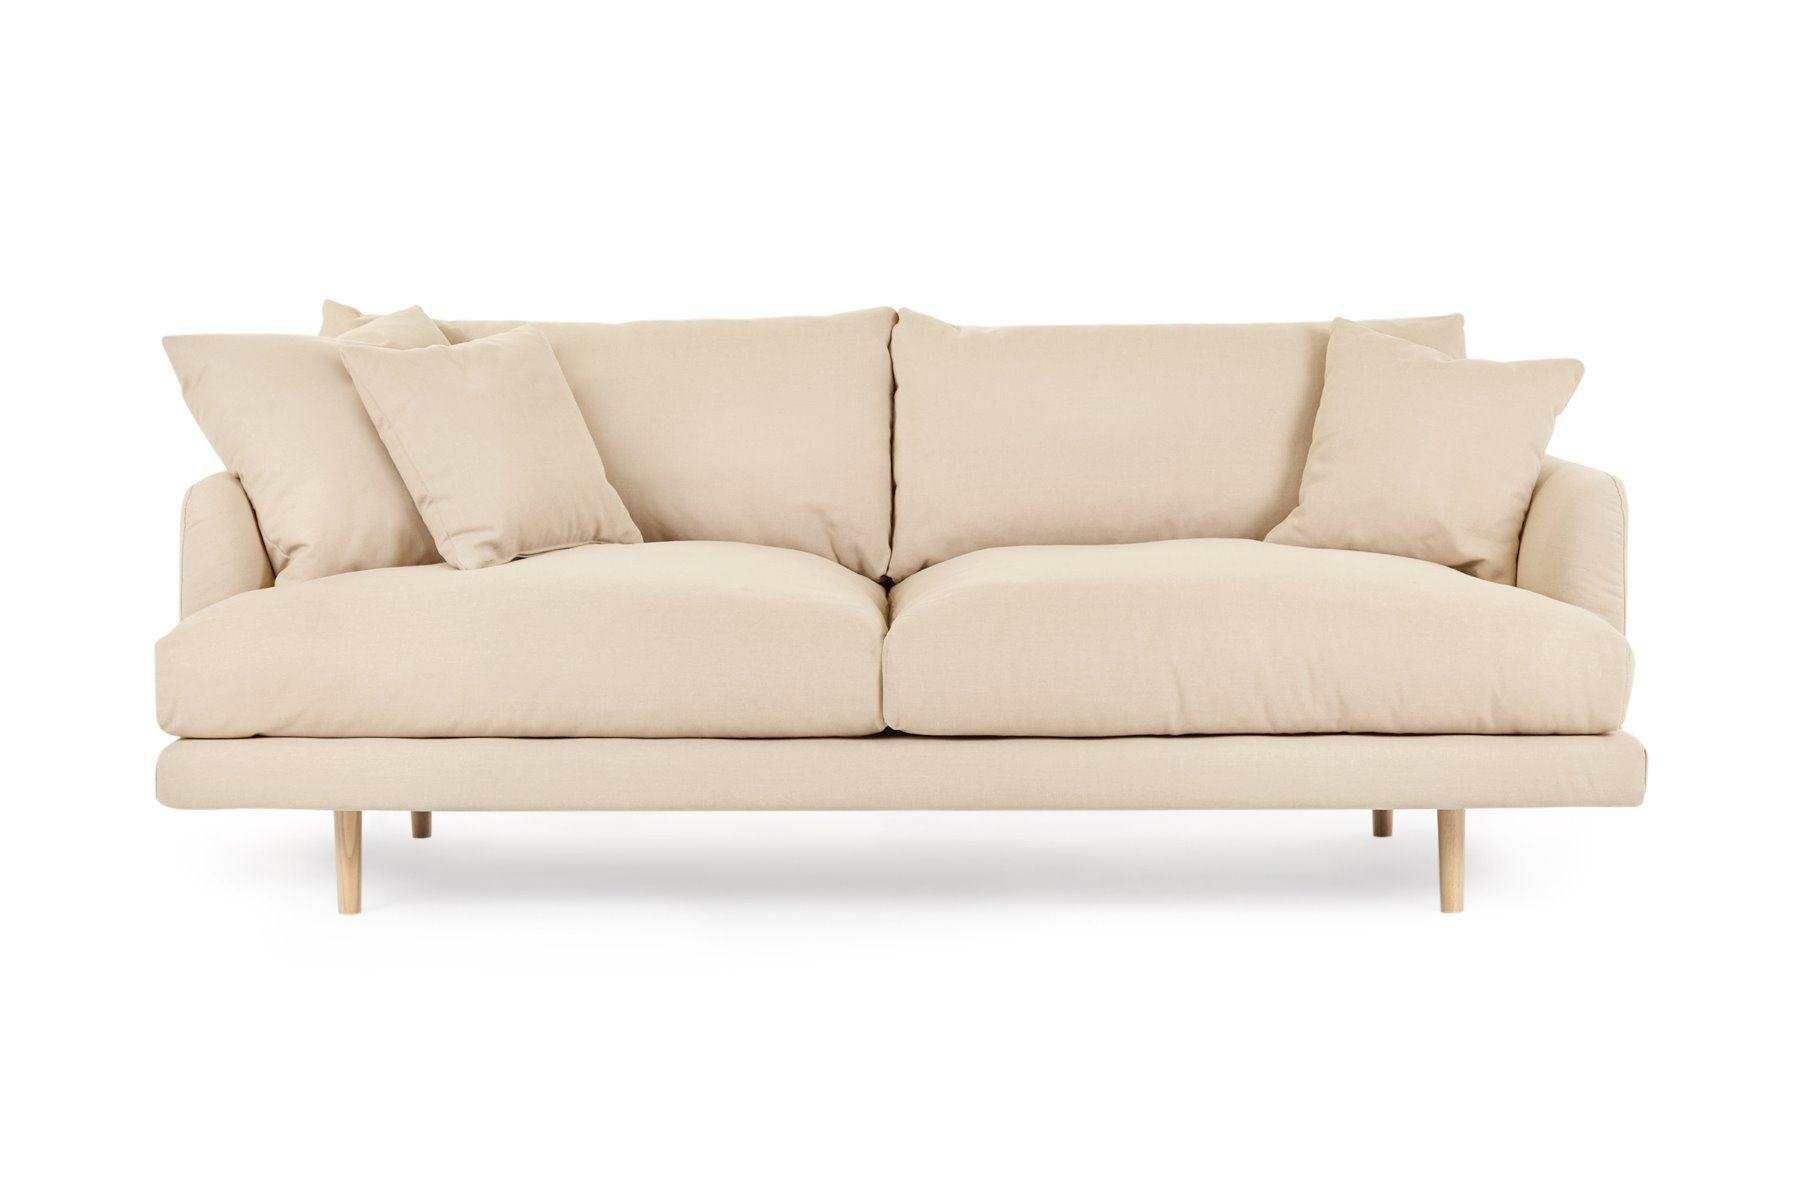 Hampton 3 Seat Sofa by Lounge Lovers, a Sofas for sale on Style Sourcebook